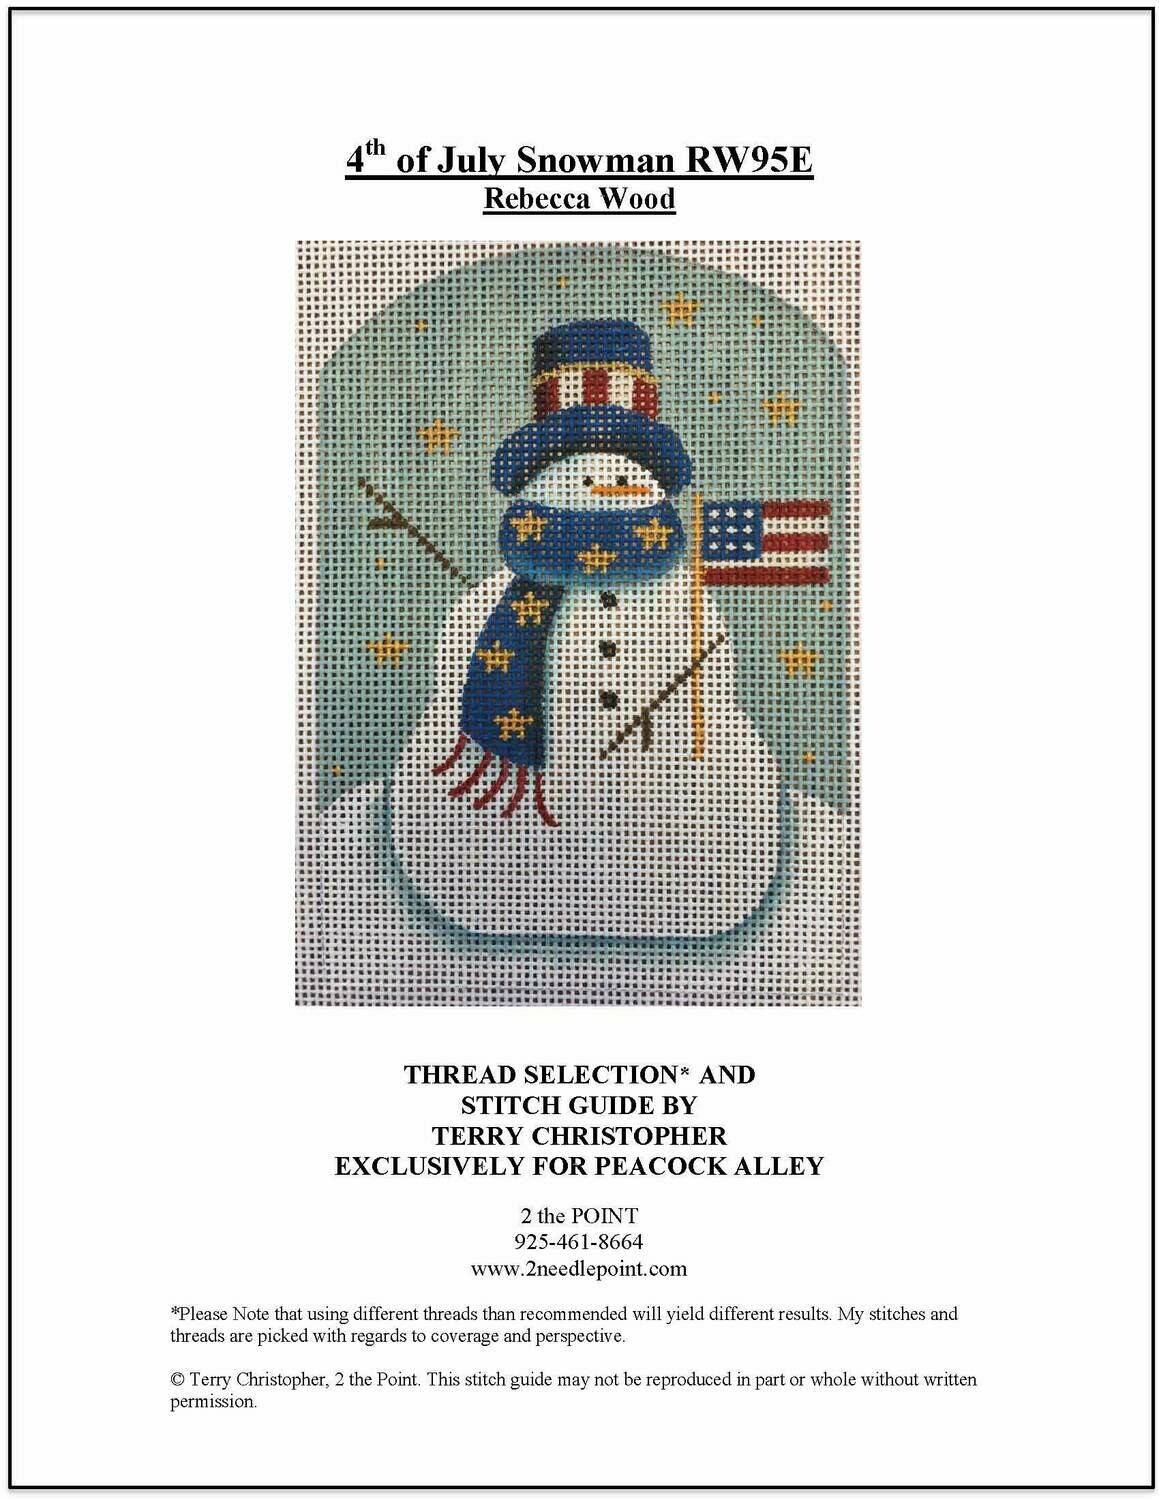 Rebecca Wood, 4th of July Snowman RW95E